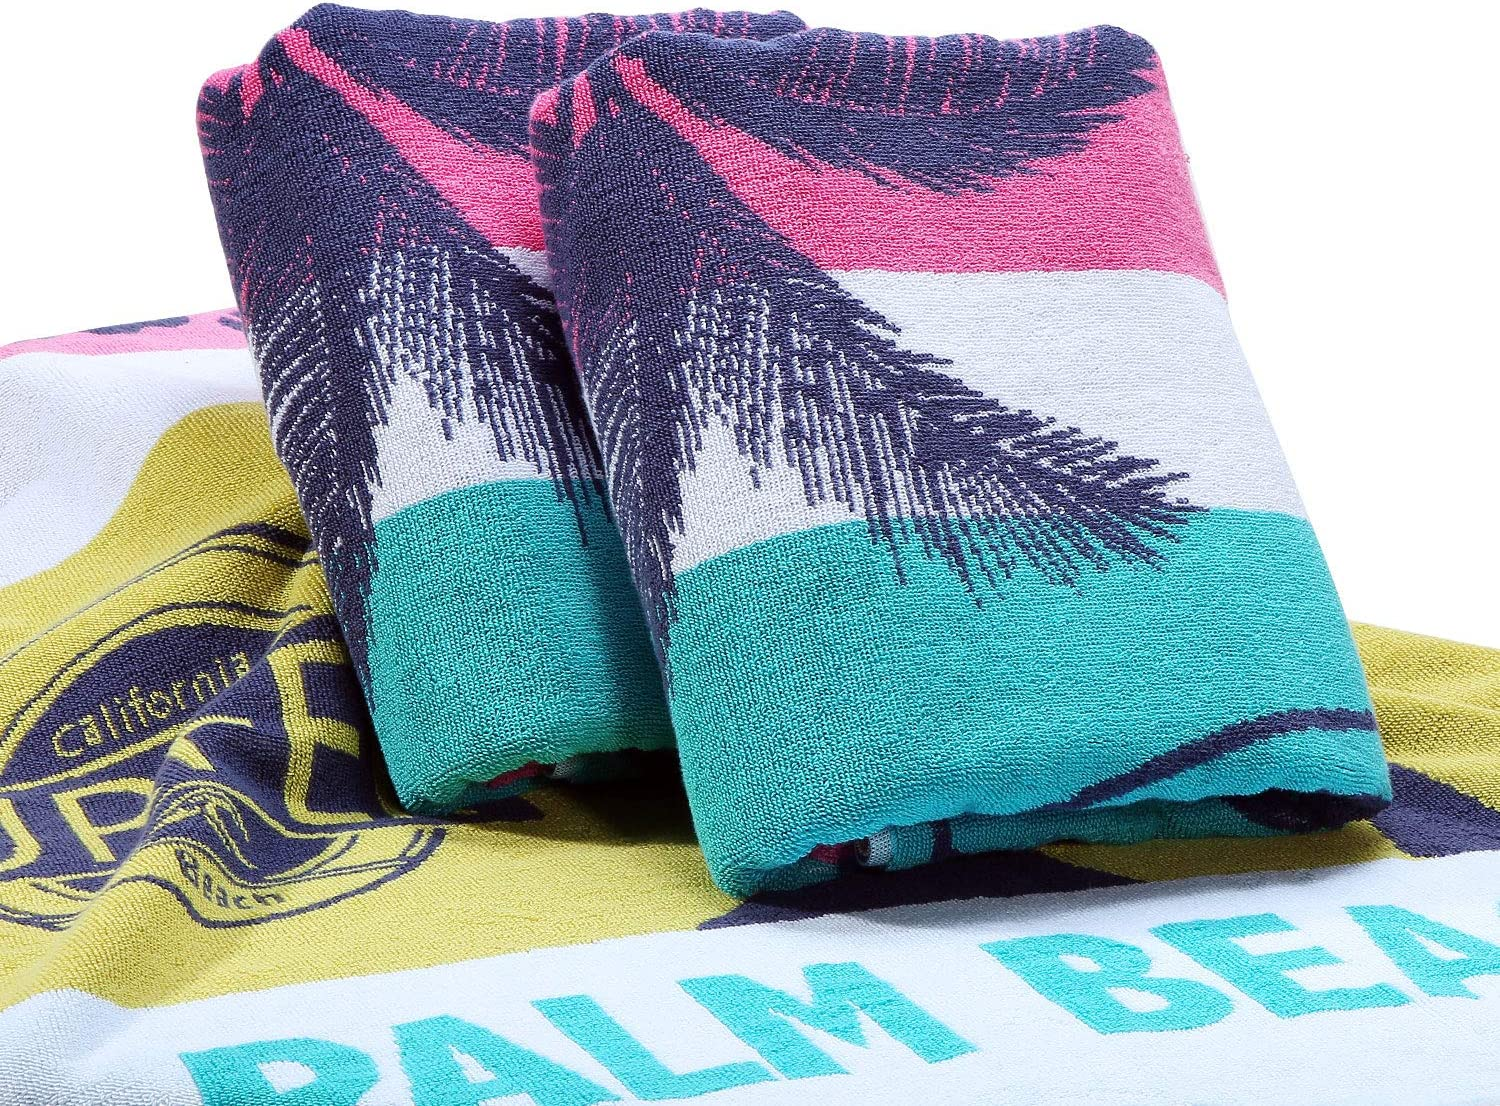 Surfwaii Oversized Thick Pool Towel